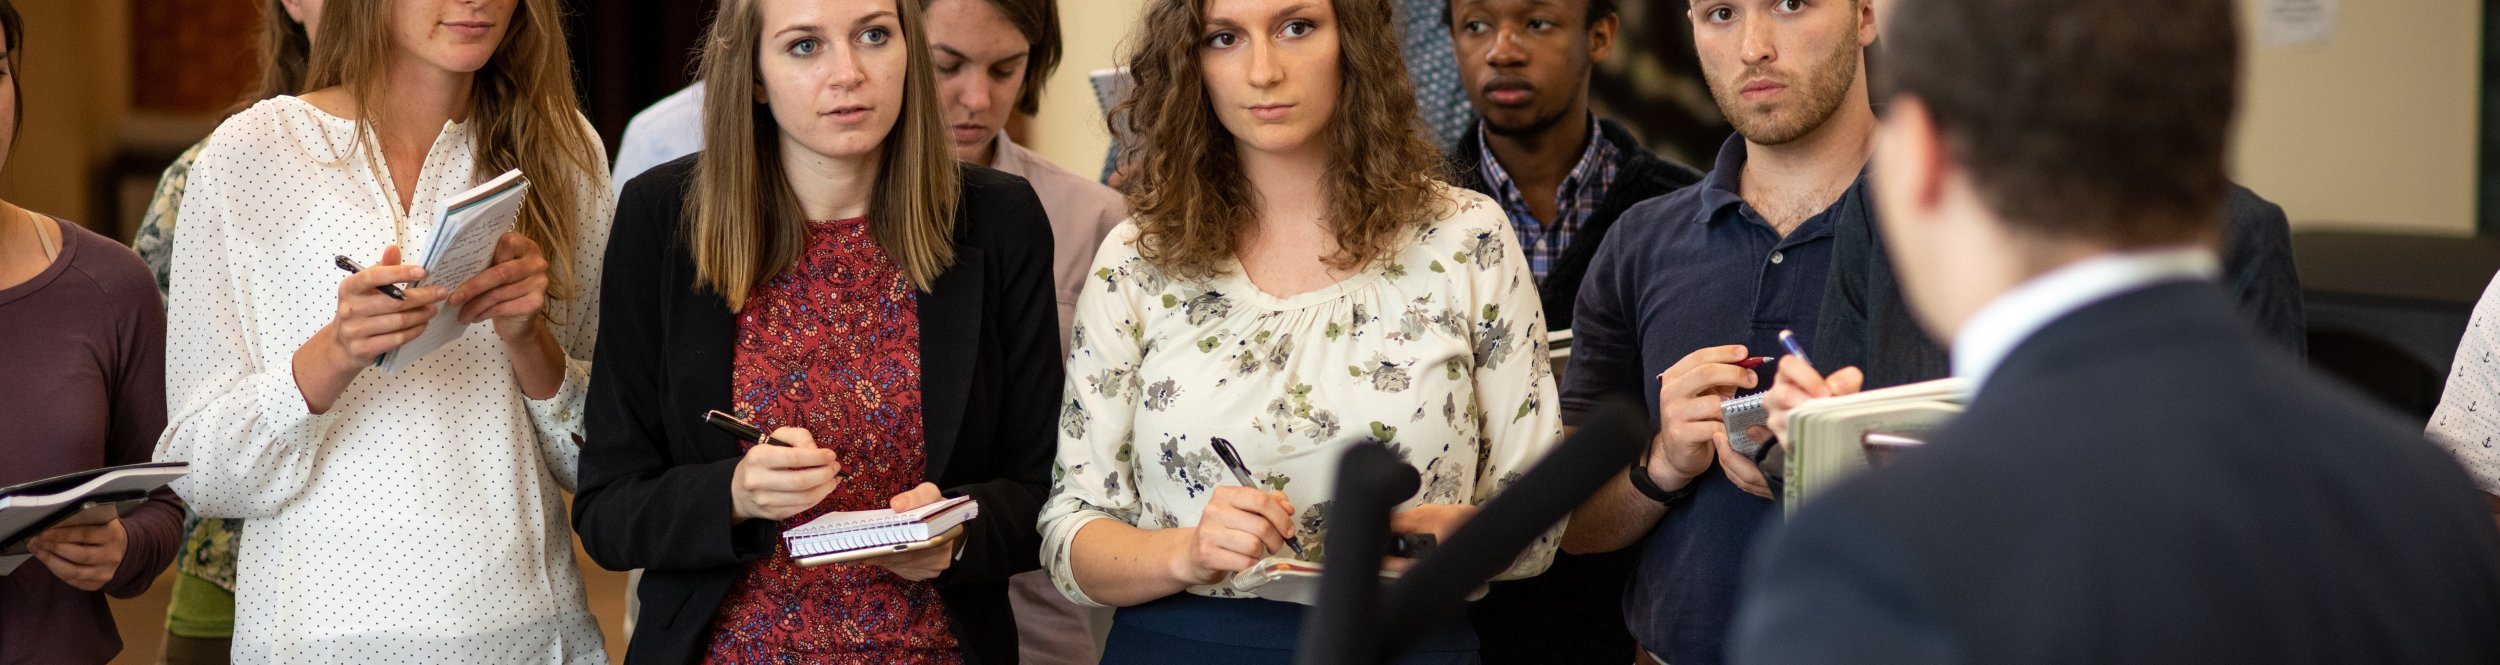 A group of journalism students ask questions at a man at a podium.